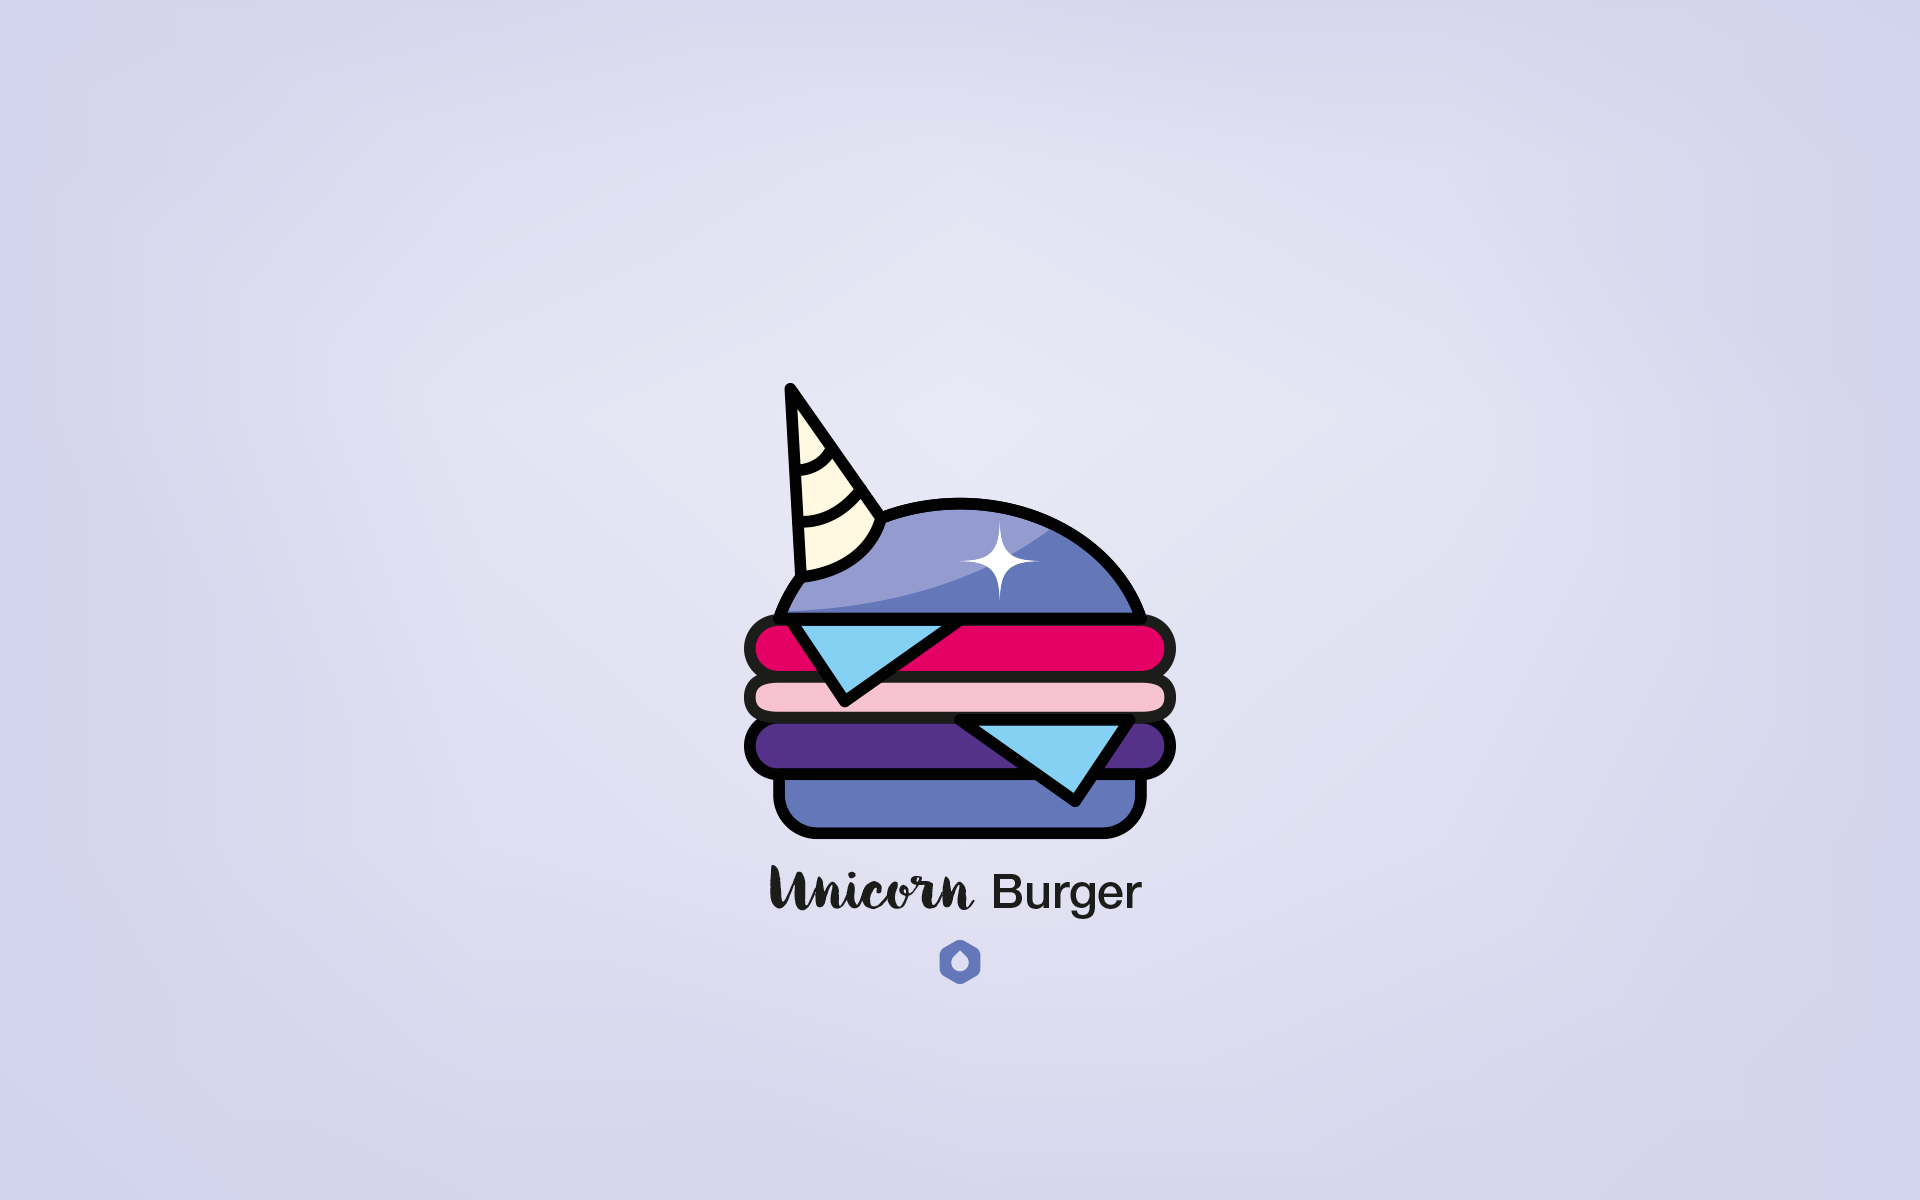 Wallpaper Pick Your Burger - DesktopHD - Unicorn